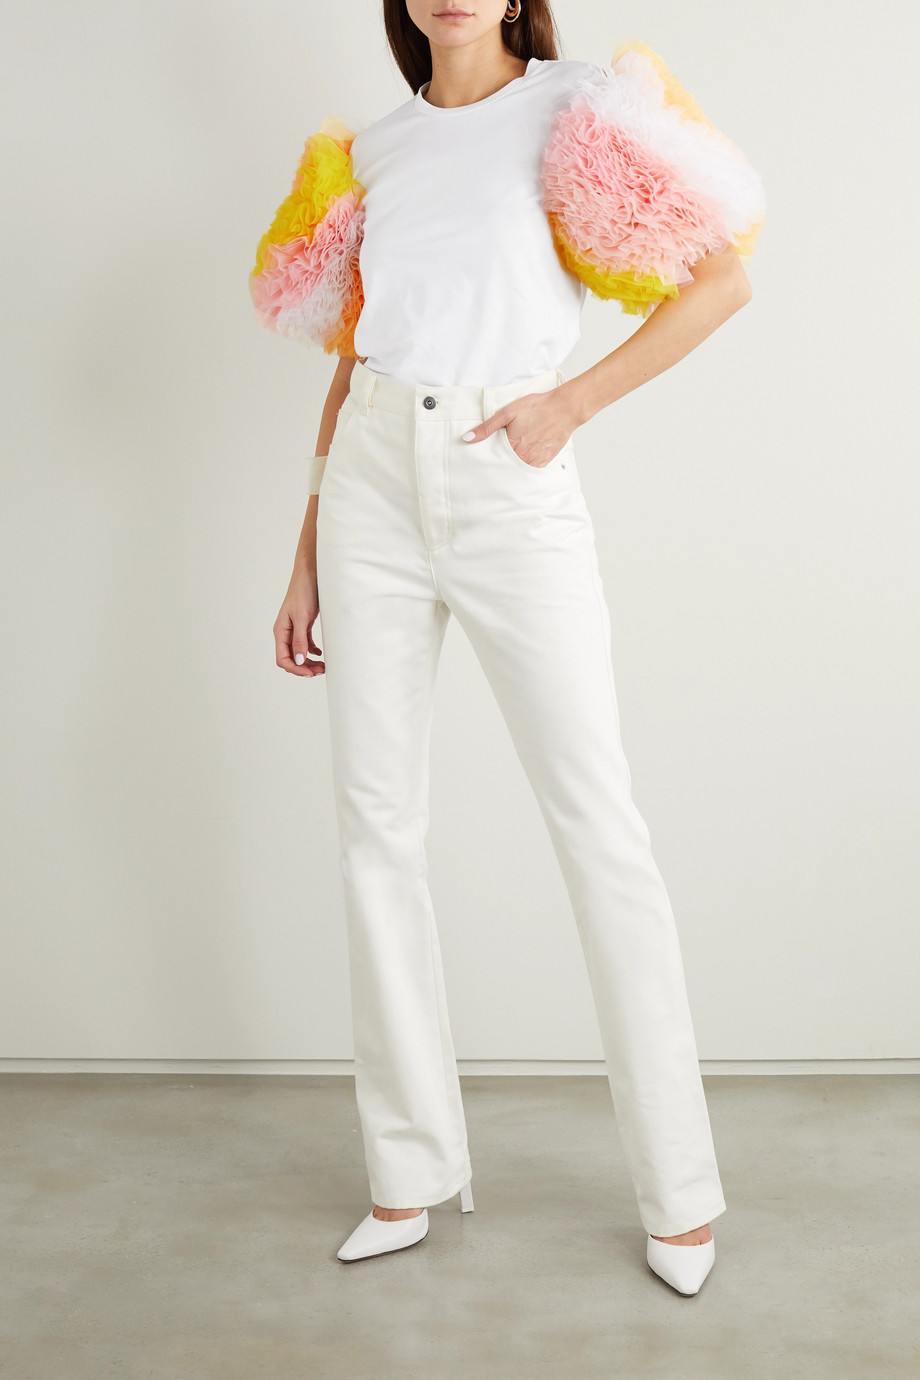 TOMO KOIZUMI X EMILIO PUCCI Cotton-jersey and ruffled tulle T-shirt